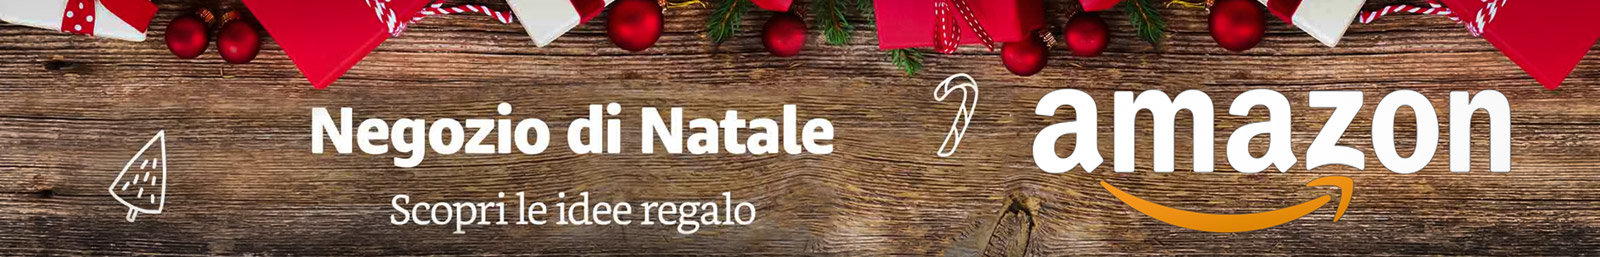 Amazon regali di Natale 2018